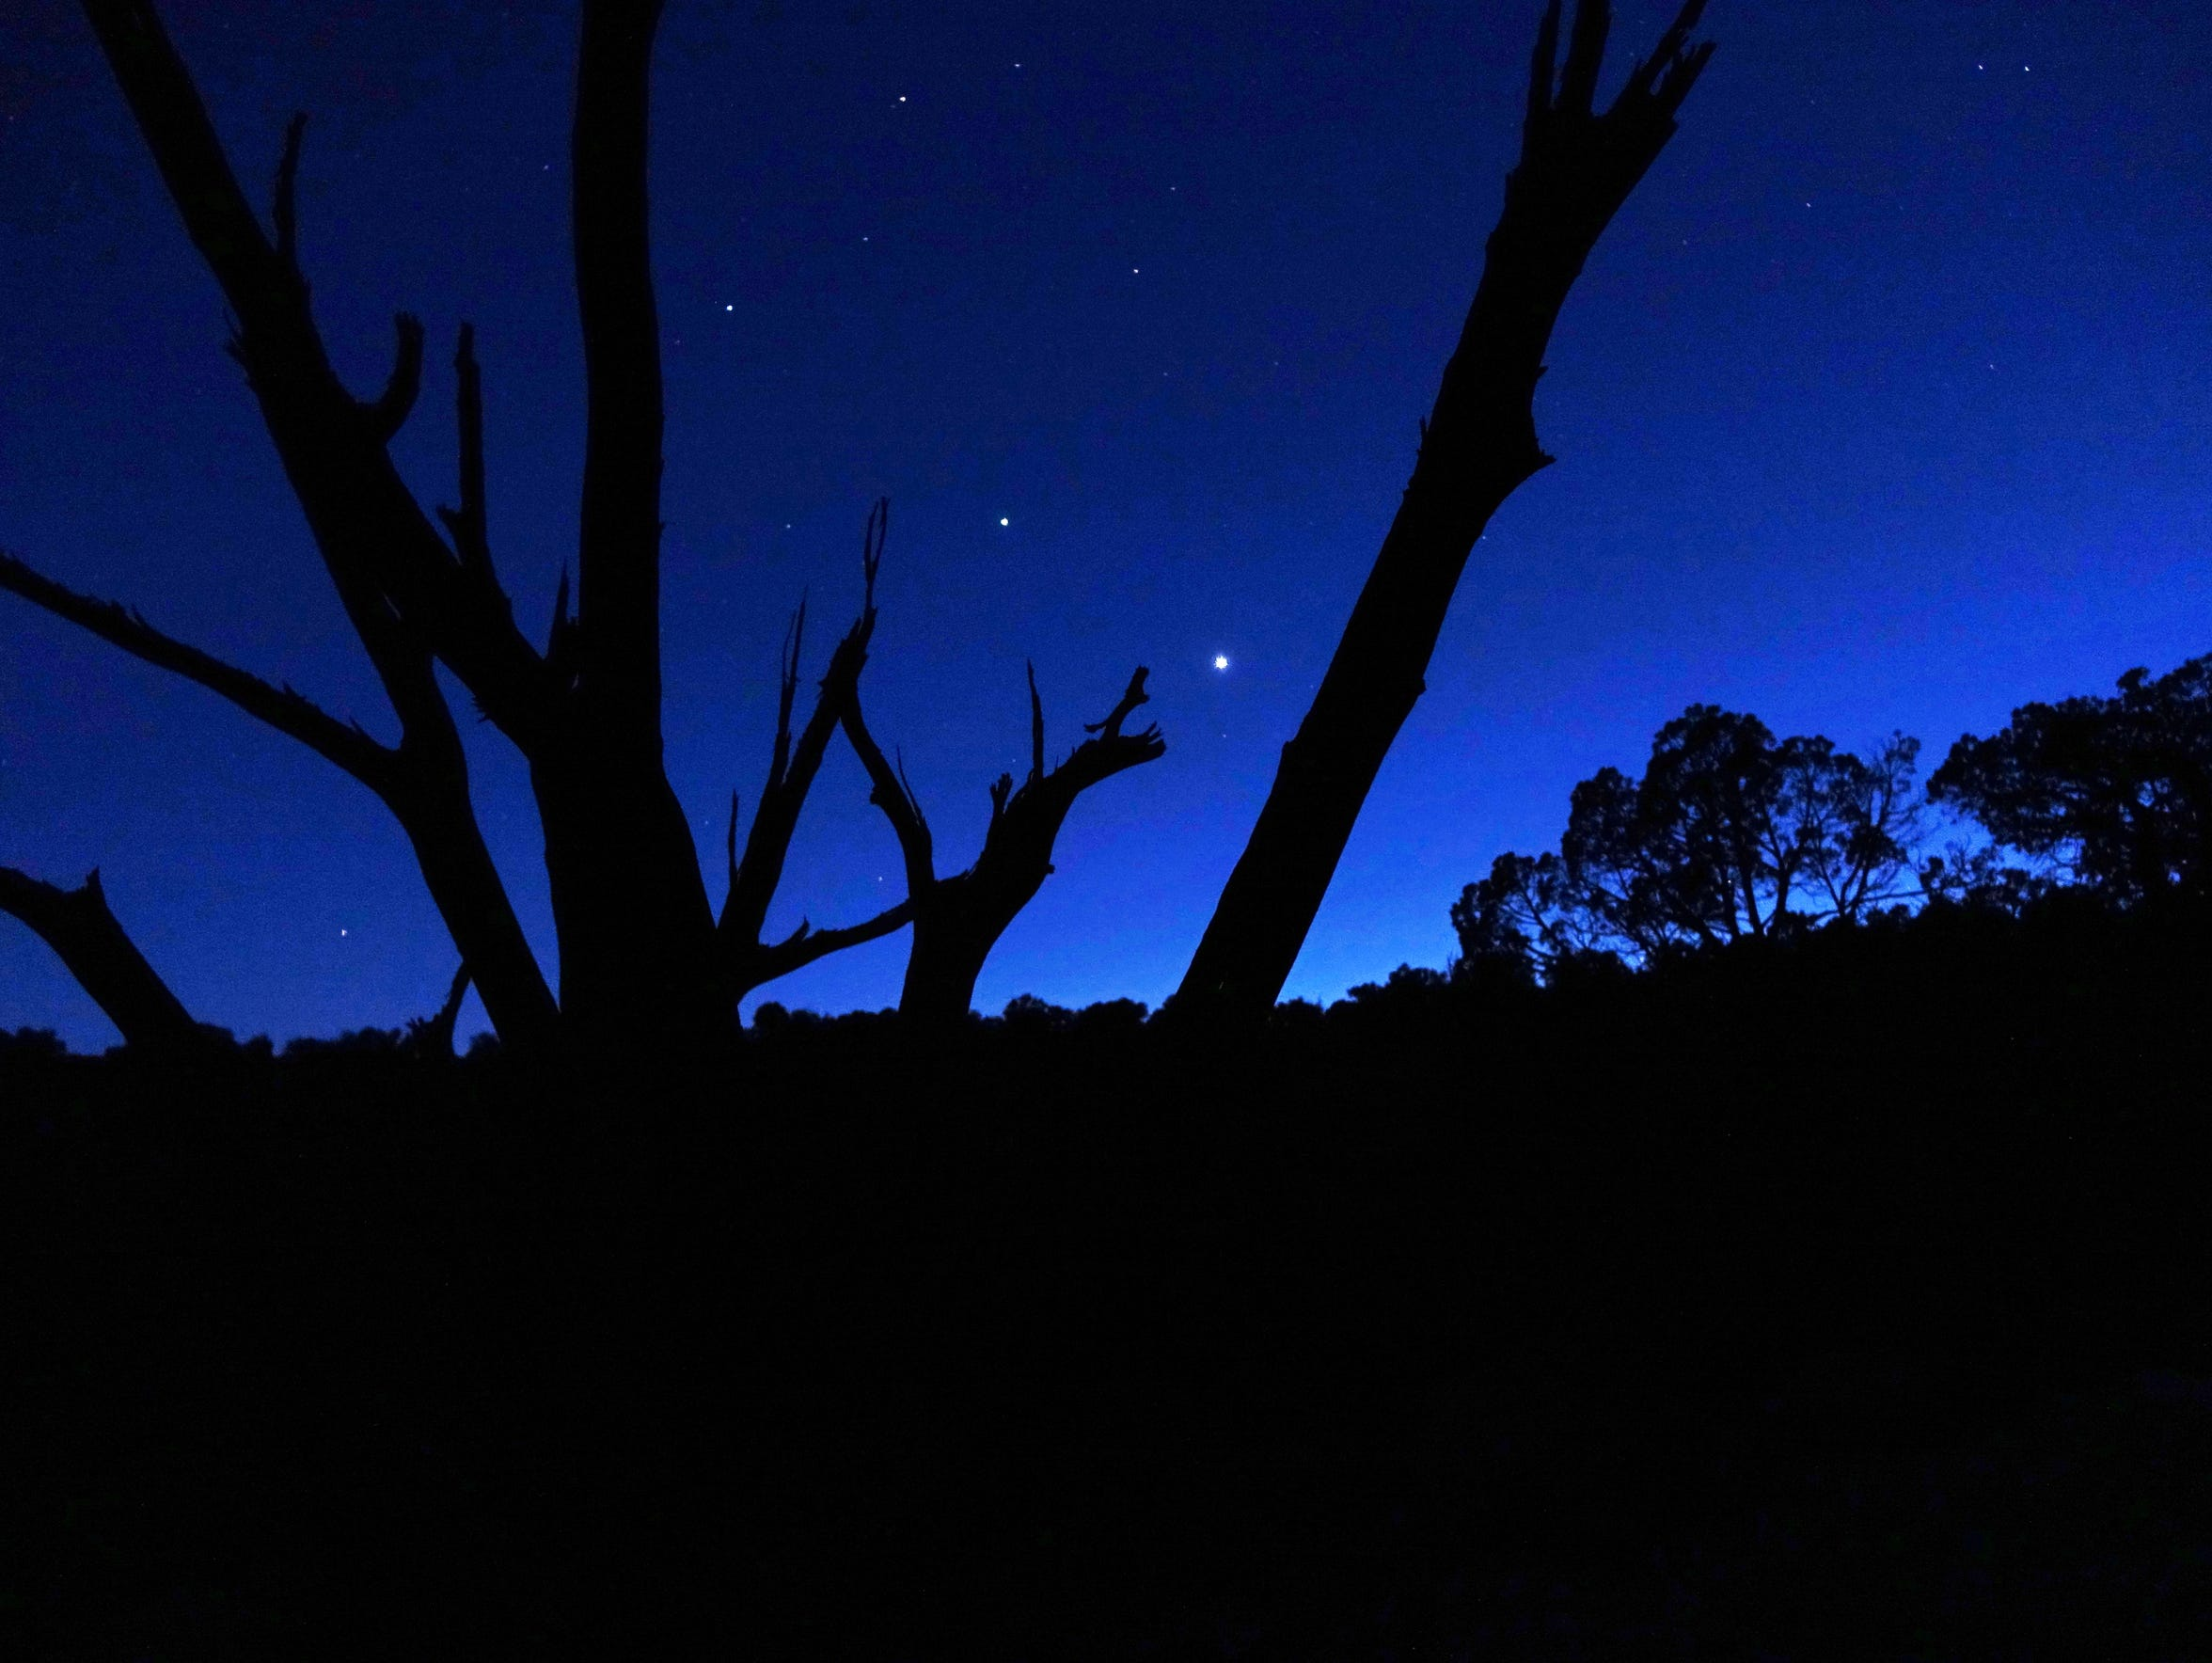 The western sky fading into darkness silhouettes a